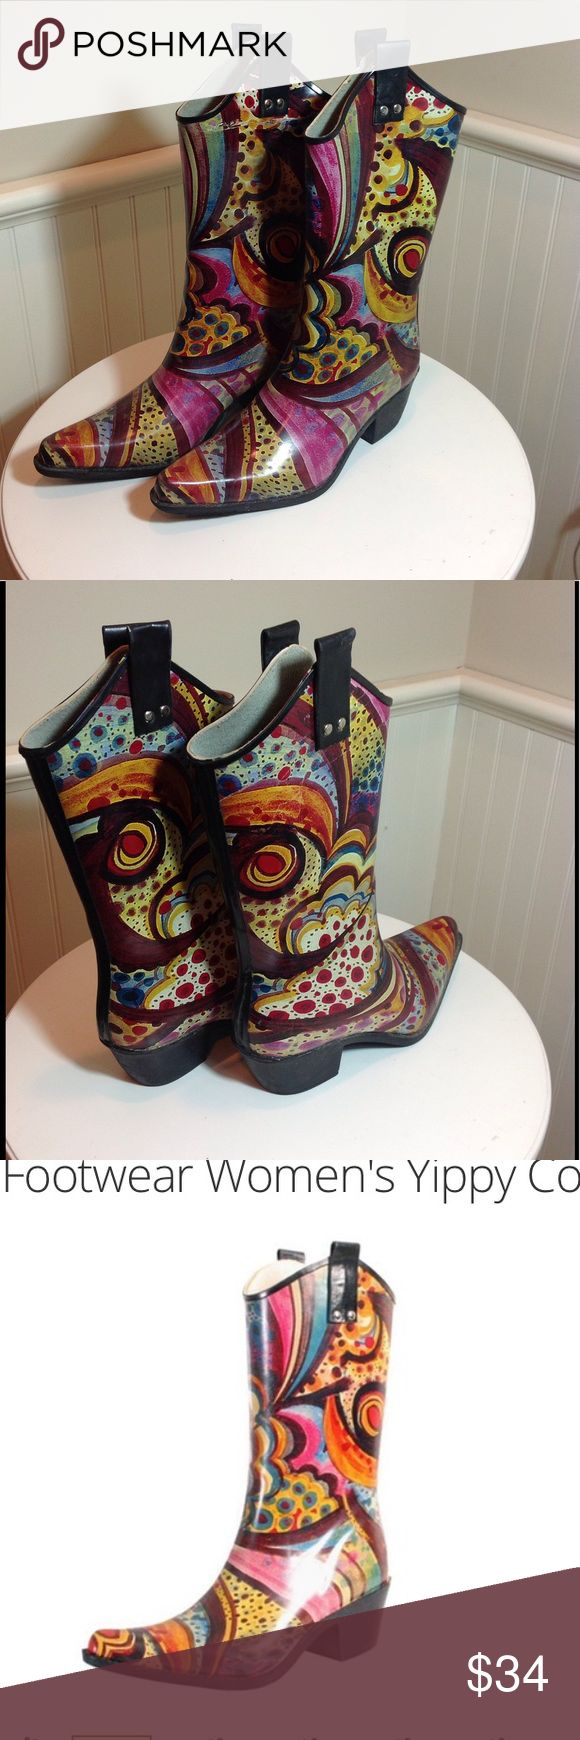 Nomad Yippy Rubber Cowboy Rainboot 8 Super cute!! Western printed cowboy rain boots!! Water resistant rubber. Non-slip sole!  Fully lined. Comfort insole. Great condition!! Size 8 Nomad Footwear Shoes Winter & Rain Boots